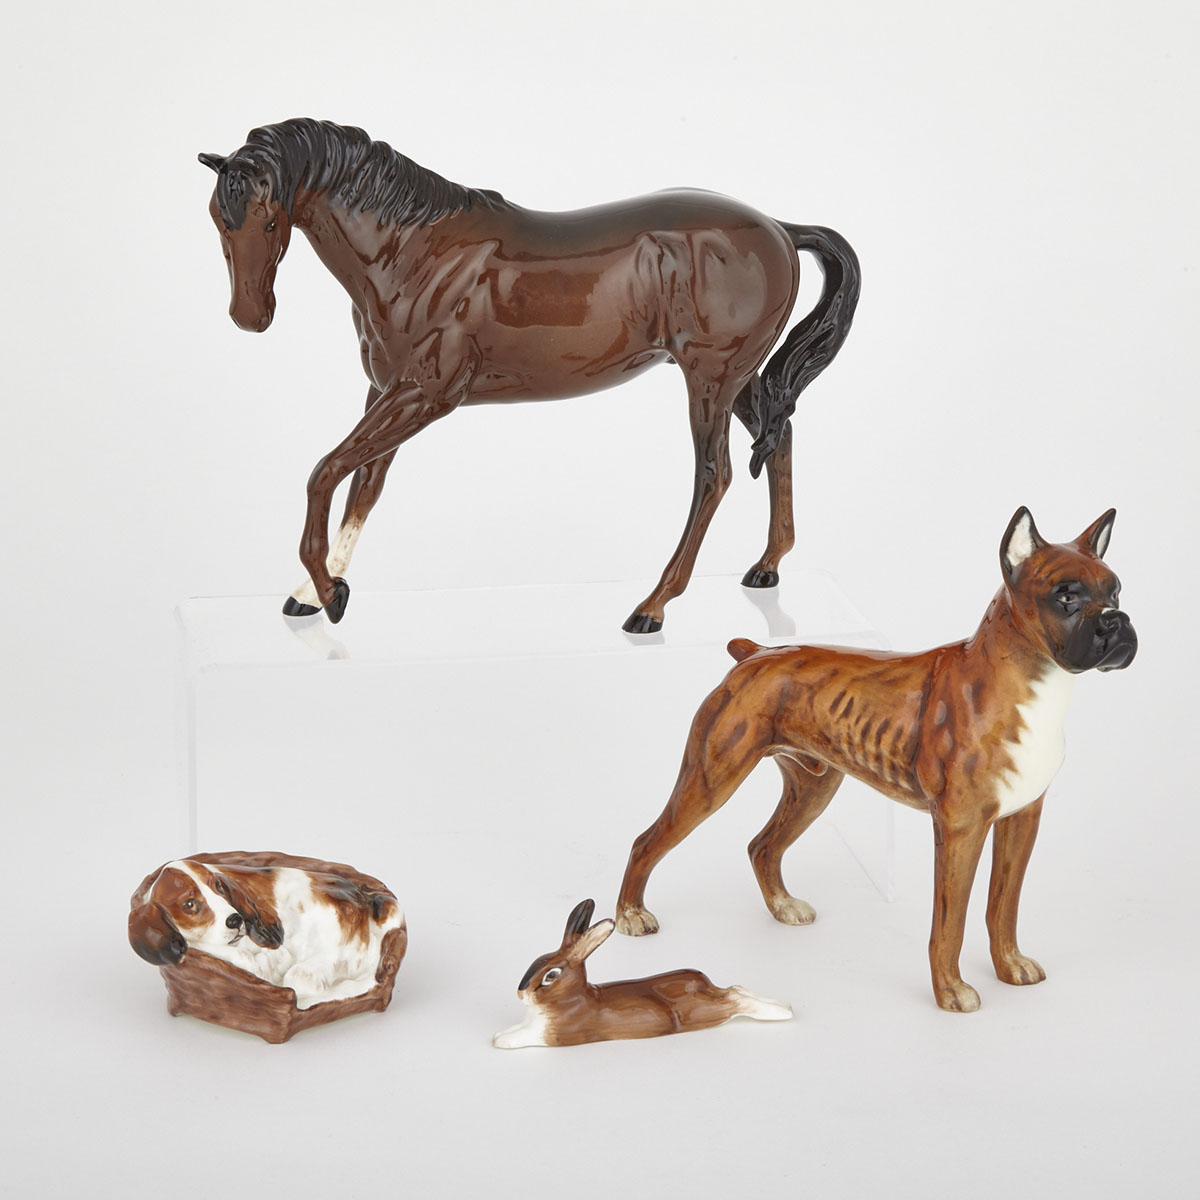 Royal Doulton Horse, Cocker Spaniel in a Basket and a Hare, together with a Goebel Boxer, 20th century